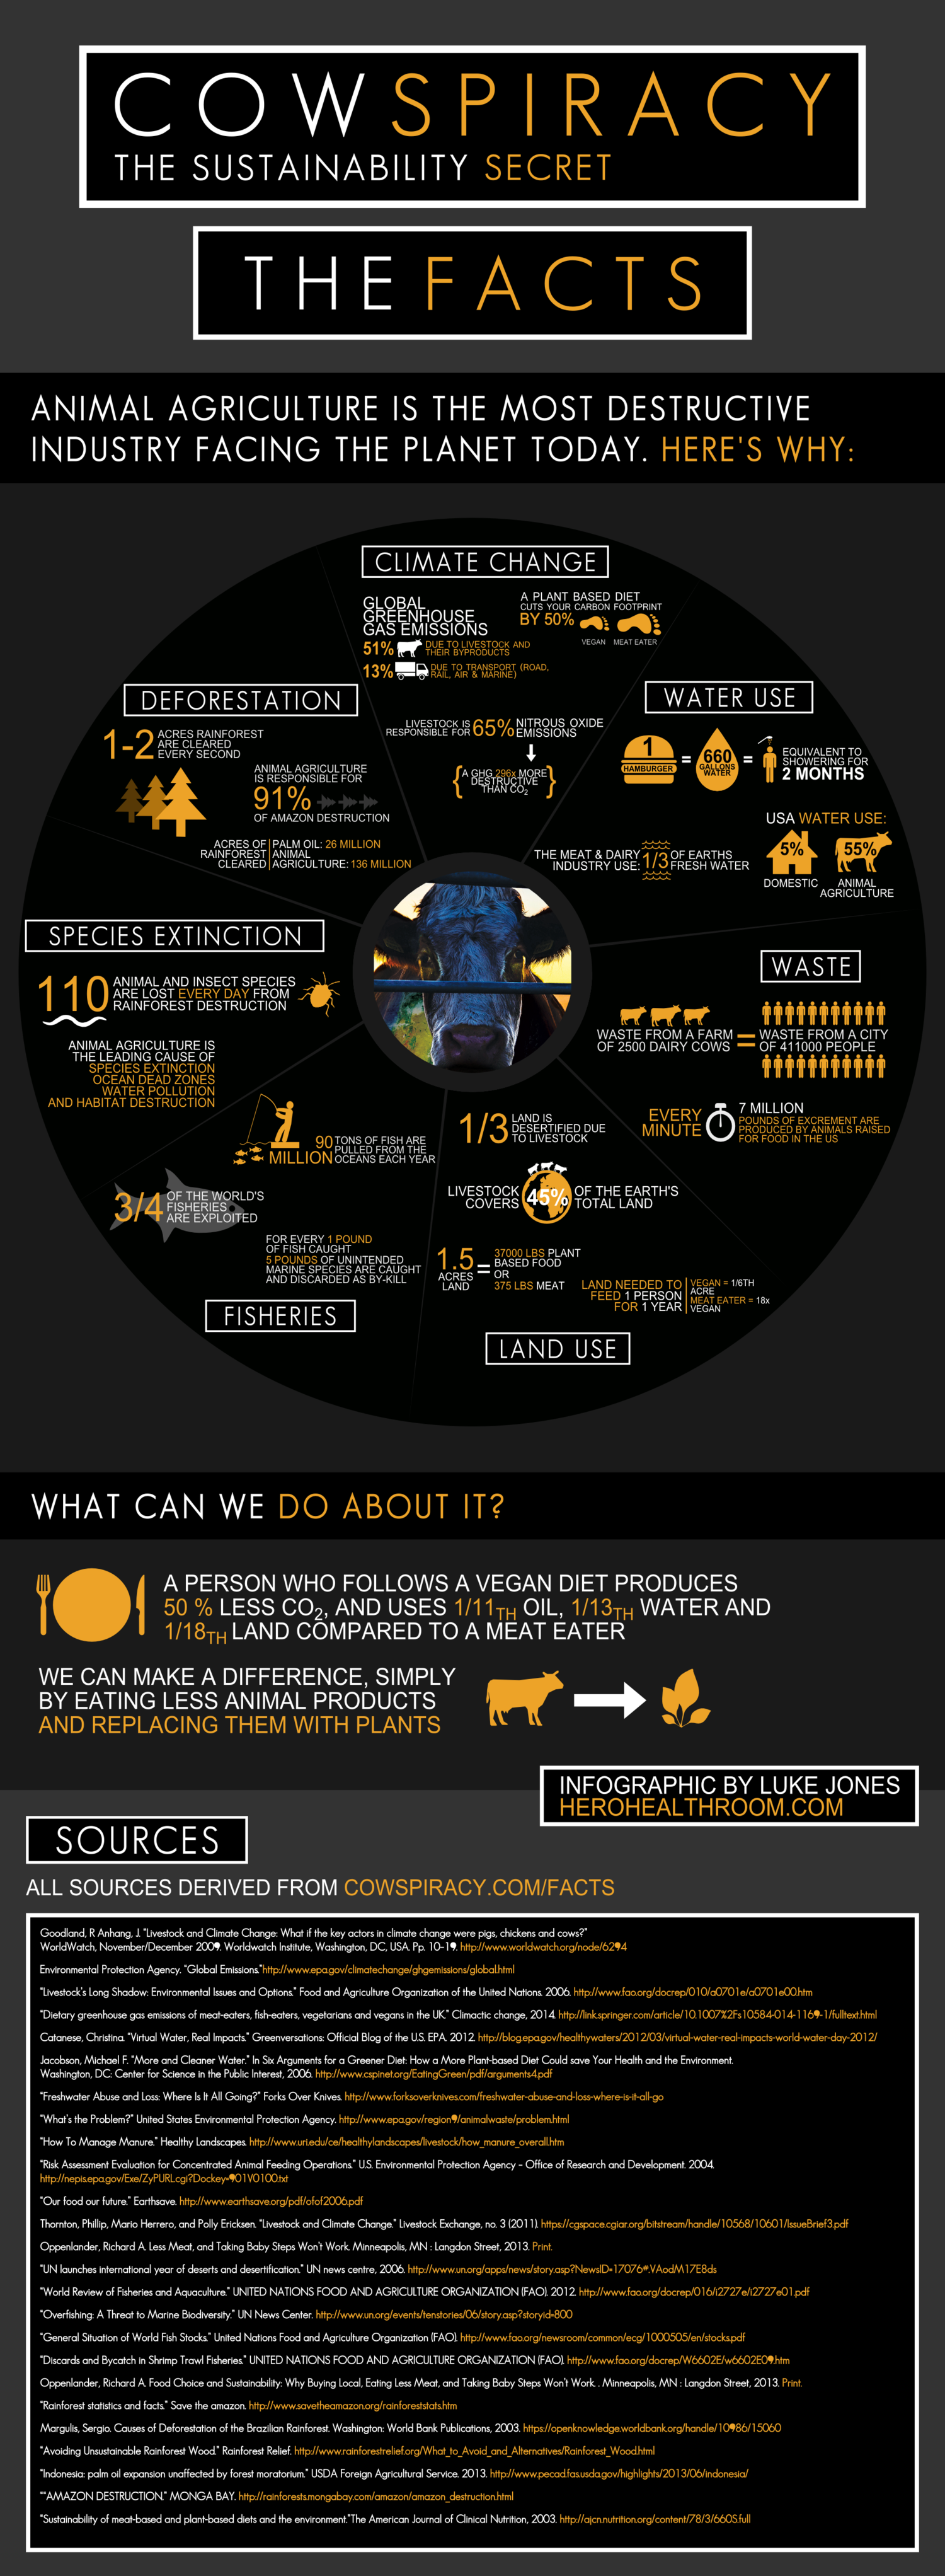 cowspiracy-the-facts.png